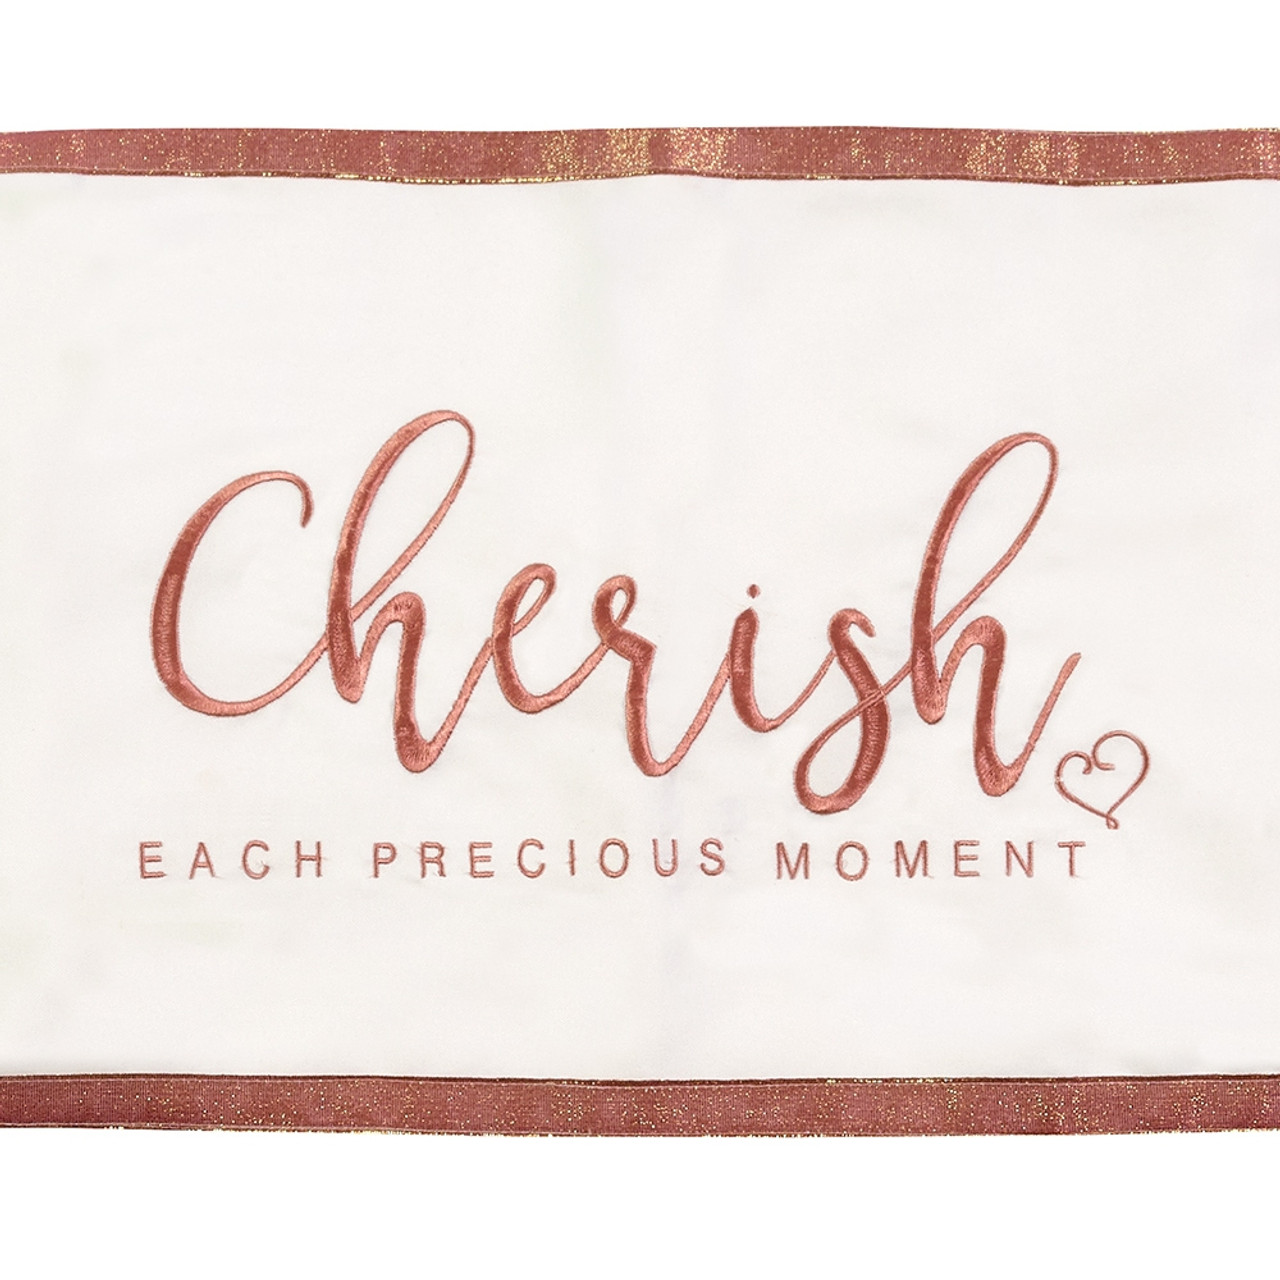 Wedding Gifts Cherish Each Precious Moment Table Runner Polyester 191442